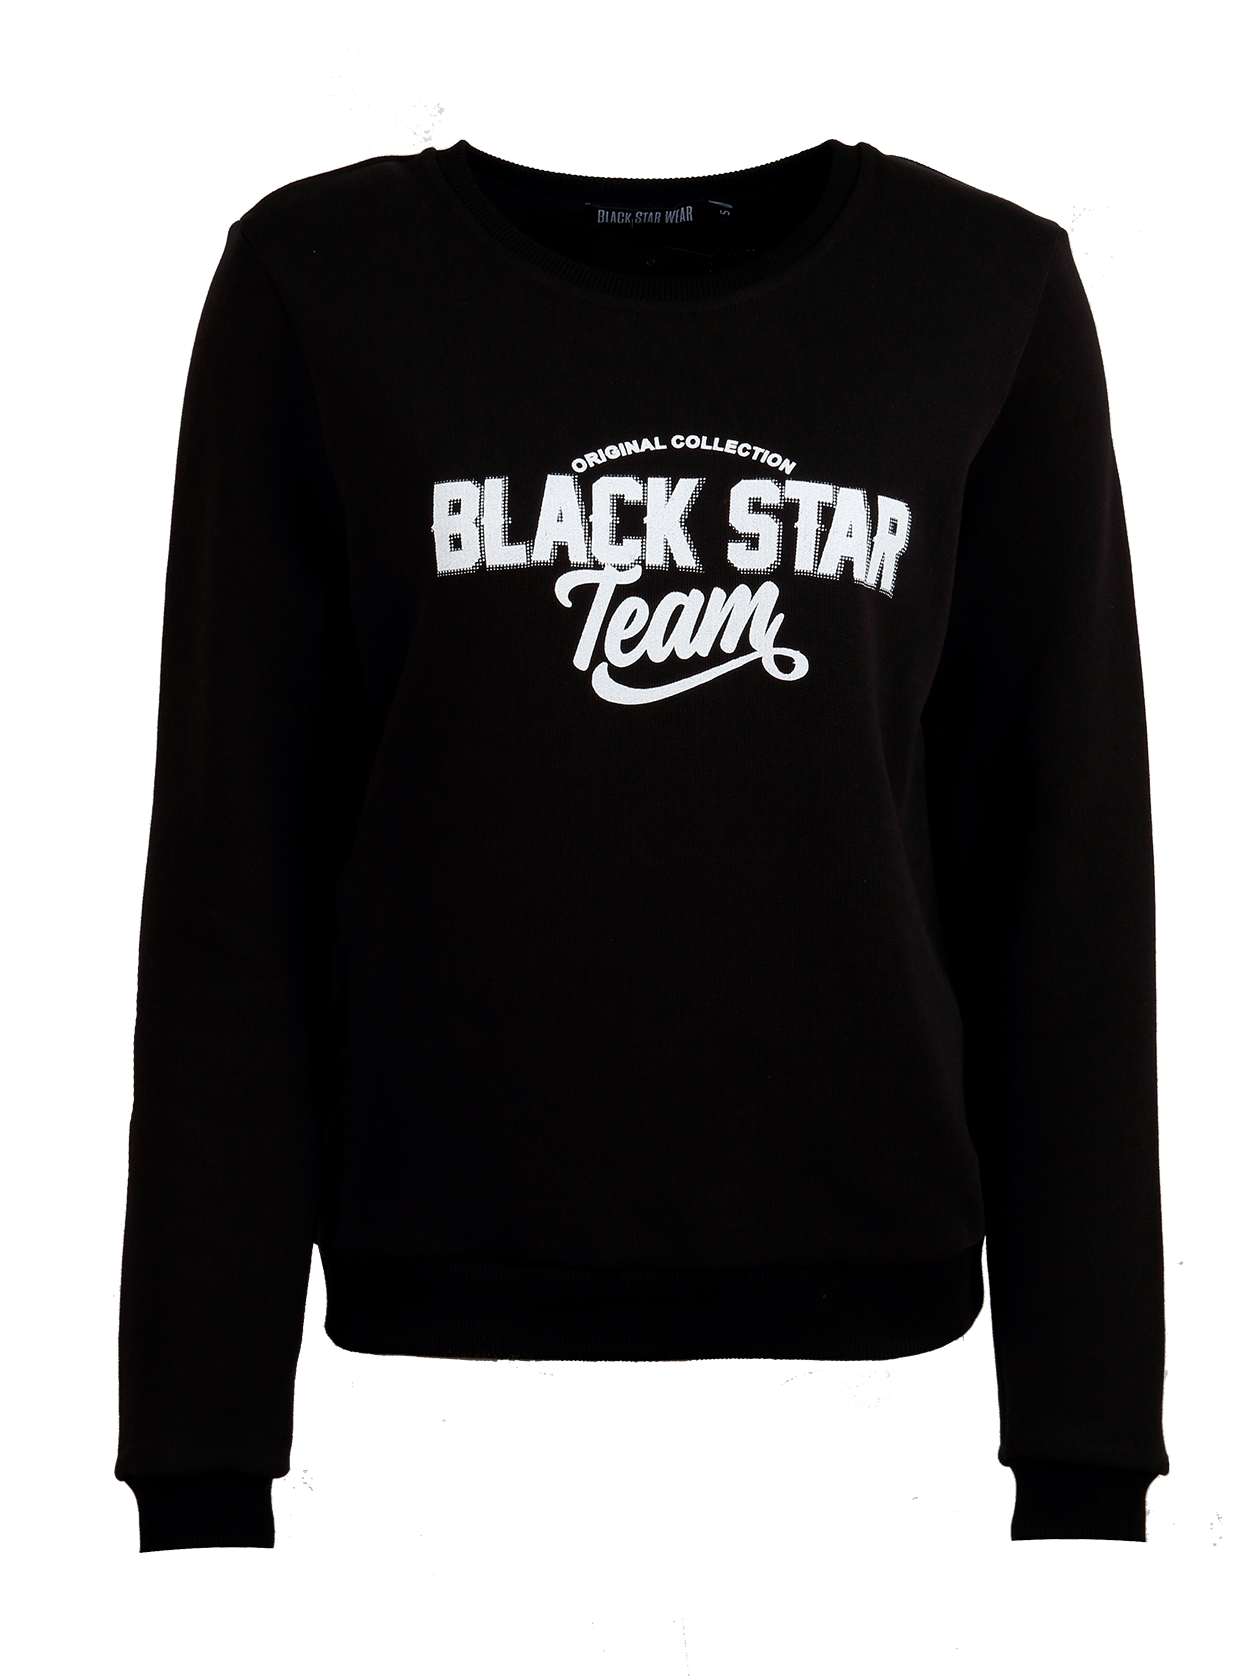 Womens sportsuit Black Star TeamWomens sweatshirt and sweatpants set by Black Star Wear. Sweatshirt with o-neck, cuffs, big print Original Collection Black Star Team and lions head on the back. Sweatpants with side pockets and and Original Collection Black Star Team print on the left side. Regular fit, natural cotton. Avaliable in gray.<br><br>size: S<br>color: Black<br>gender: female